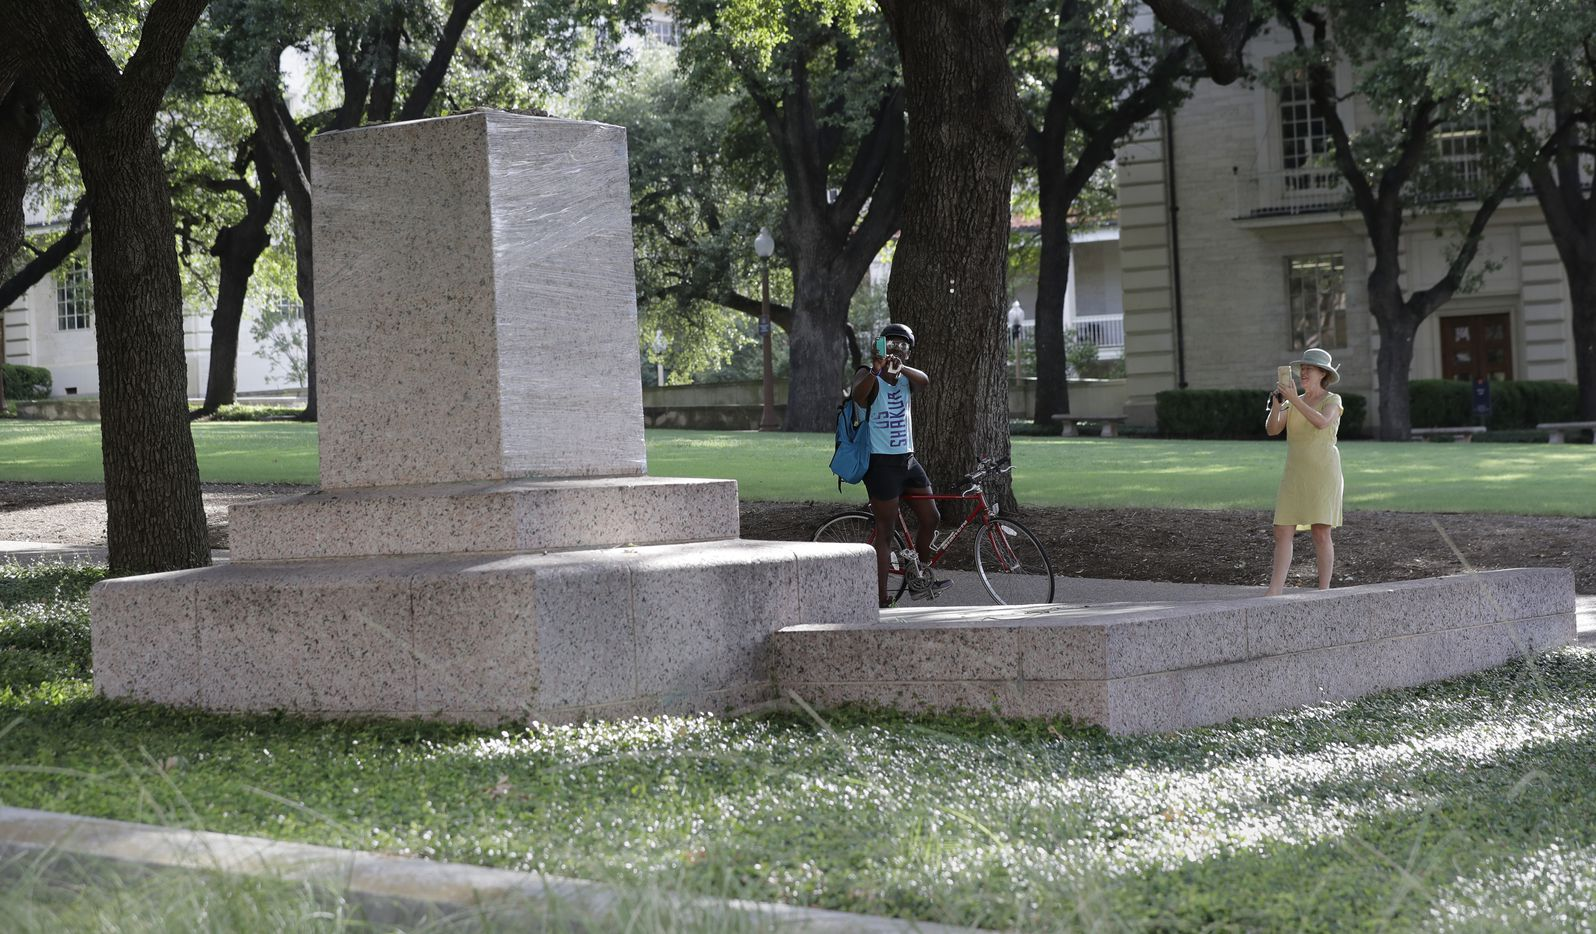 A pedestal wrapped in plastic that had held a statue of Confederate Gen. Robert E. Lee, which was removed from the University of Texas campus early Monday morning is photographed, Aug. 21, 2017, in Austin, Texas.